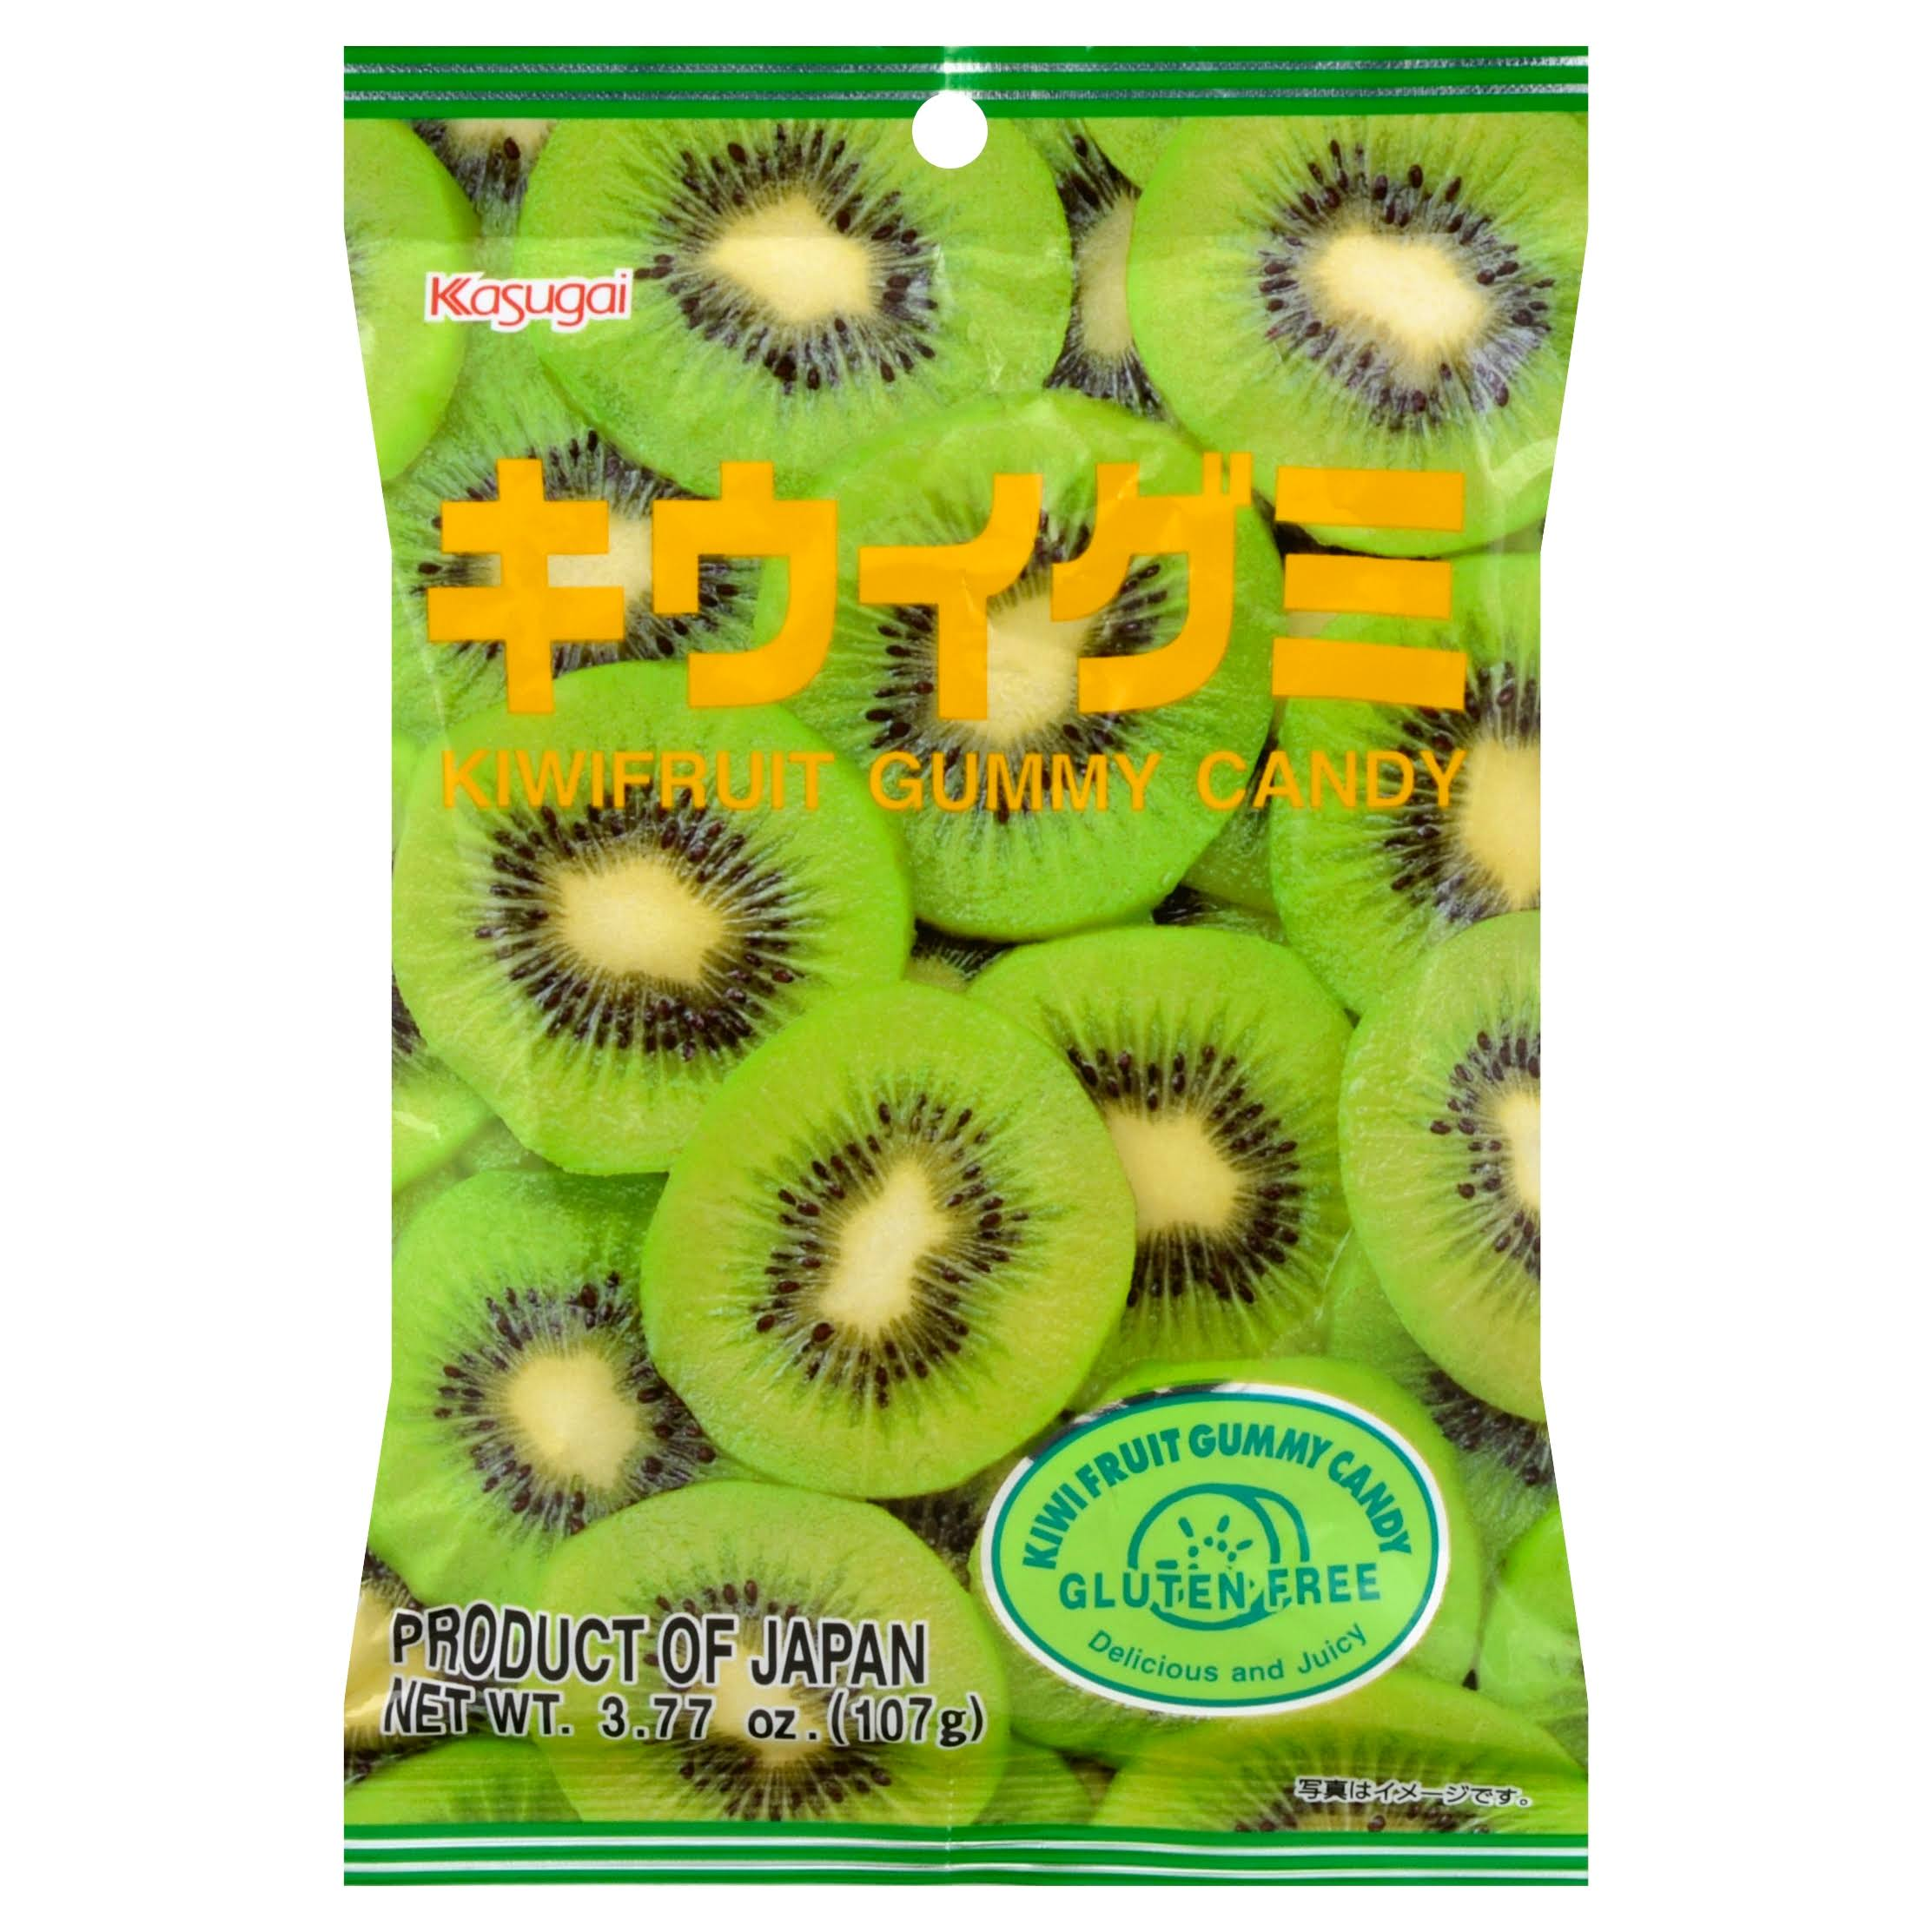 Kasugai Gummy Candy, Kiwifruit - 3.77 oz